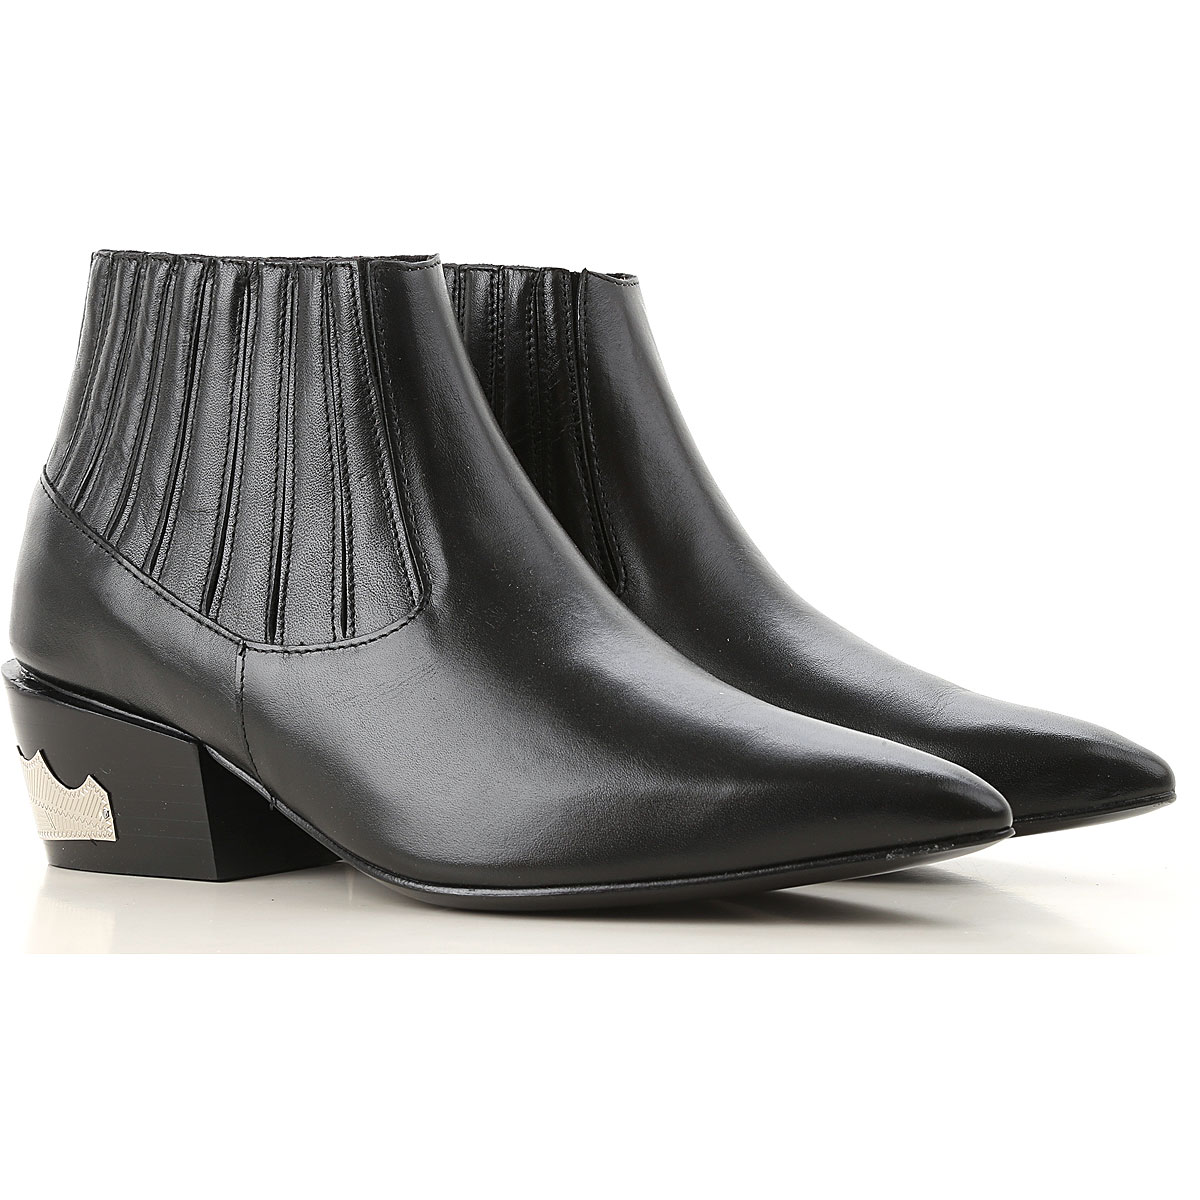 Image of Toga Pulla Boots for Women, Booties, Black, Leather, 2017, 10 11 6 7